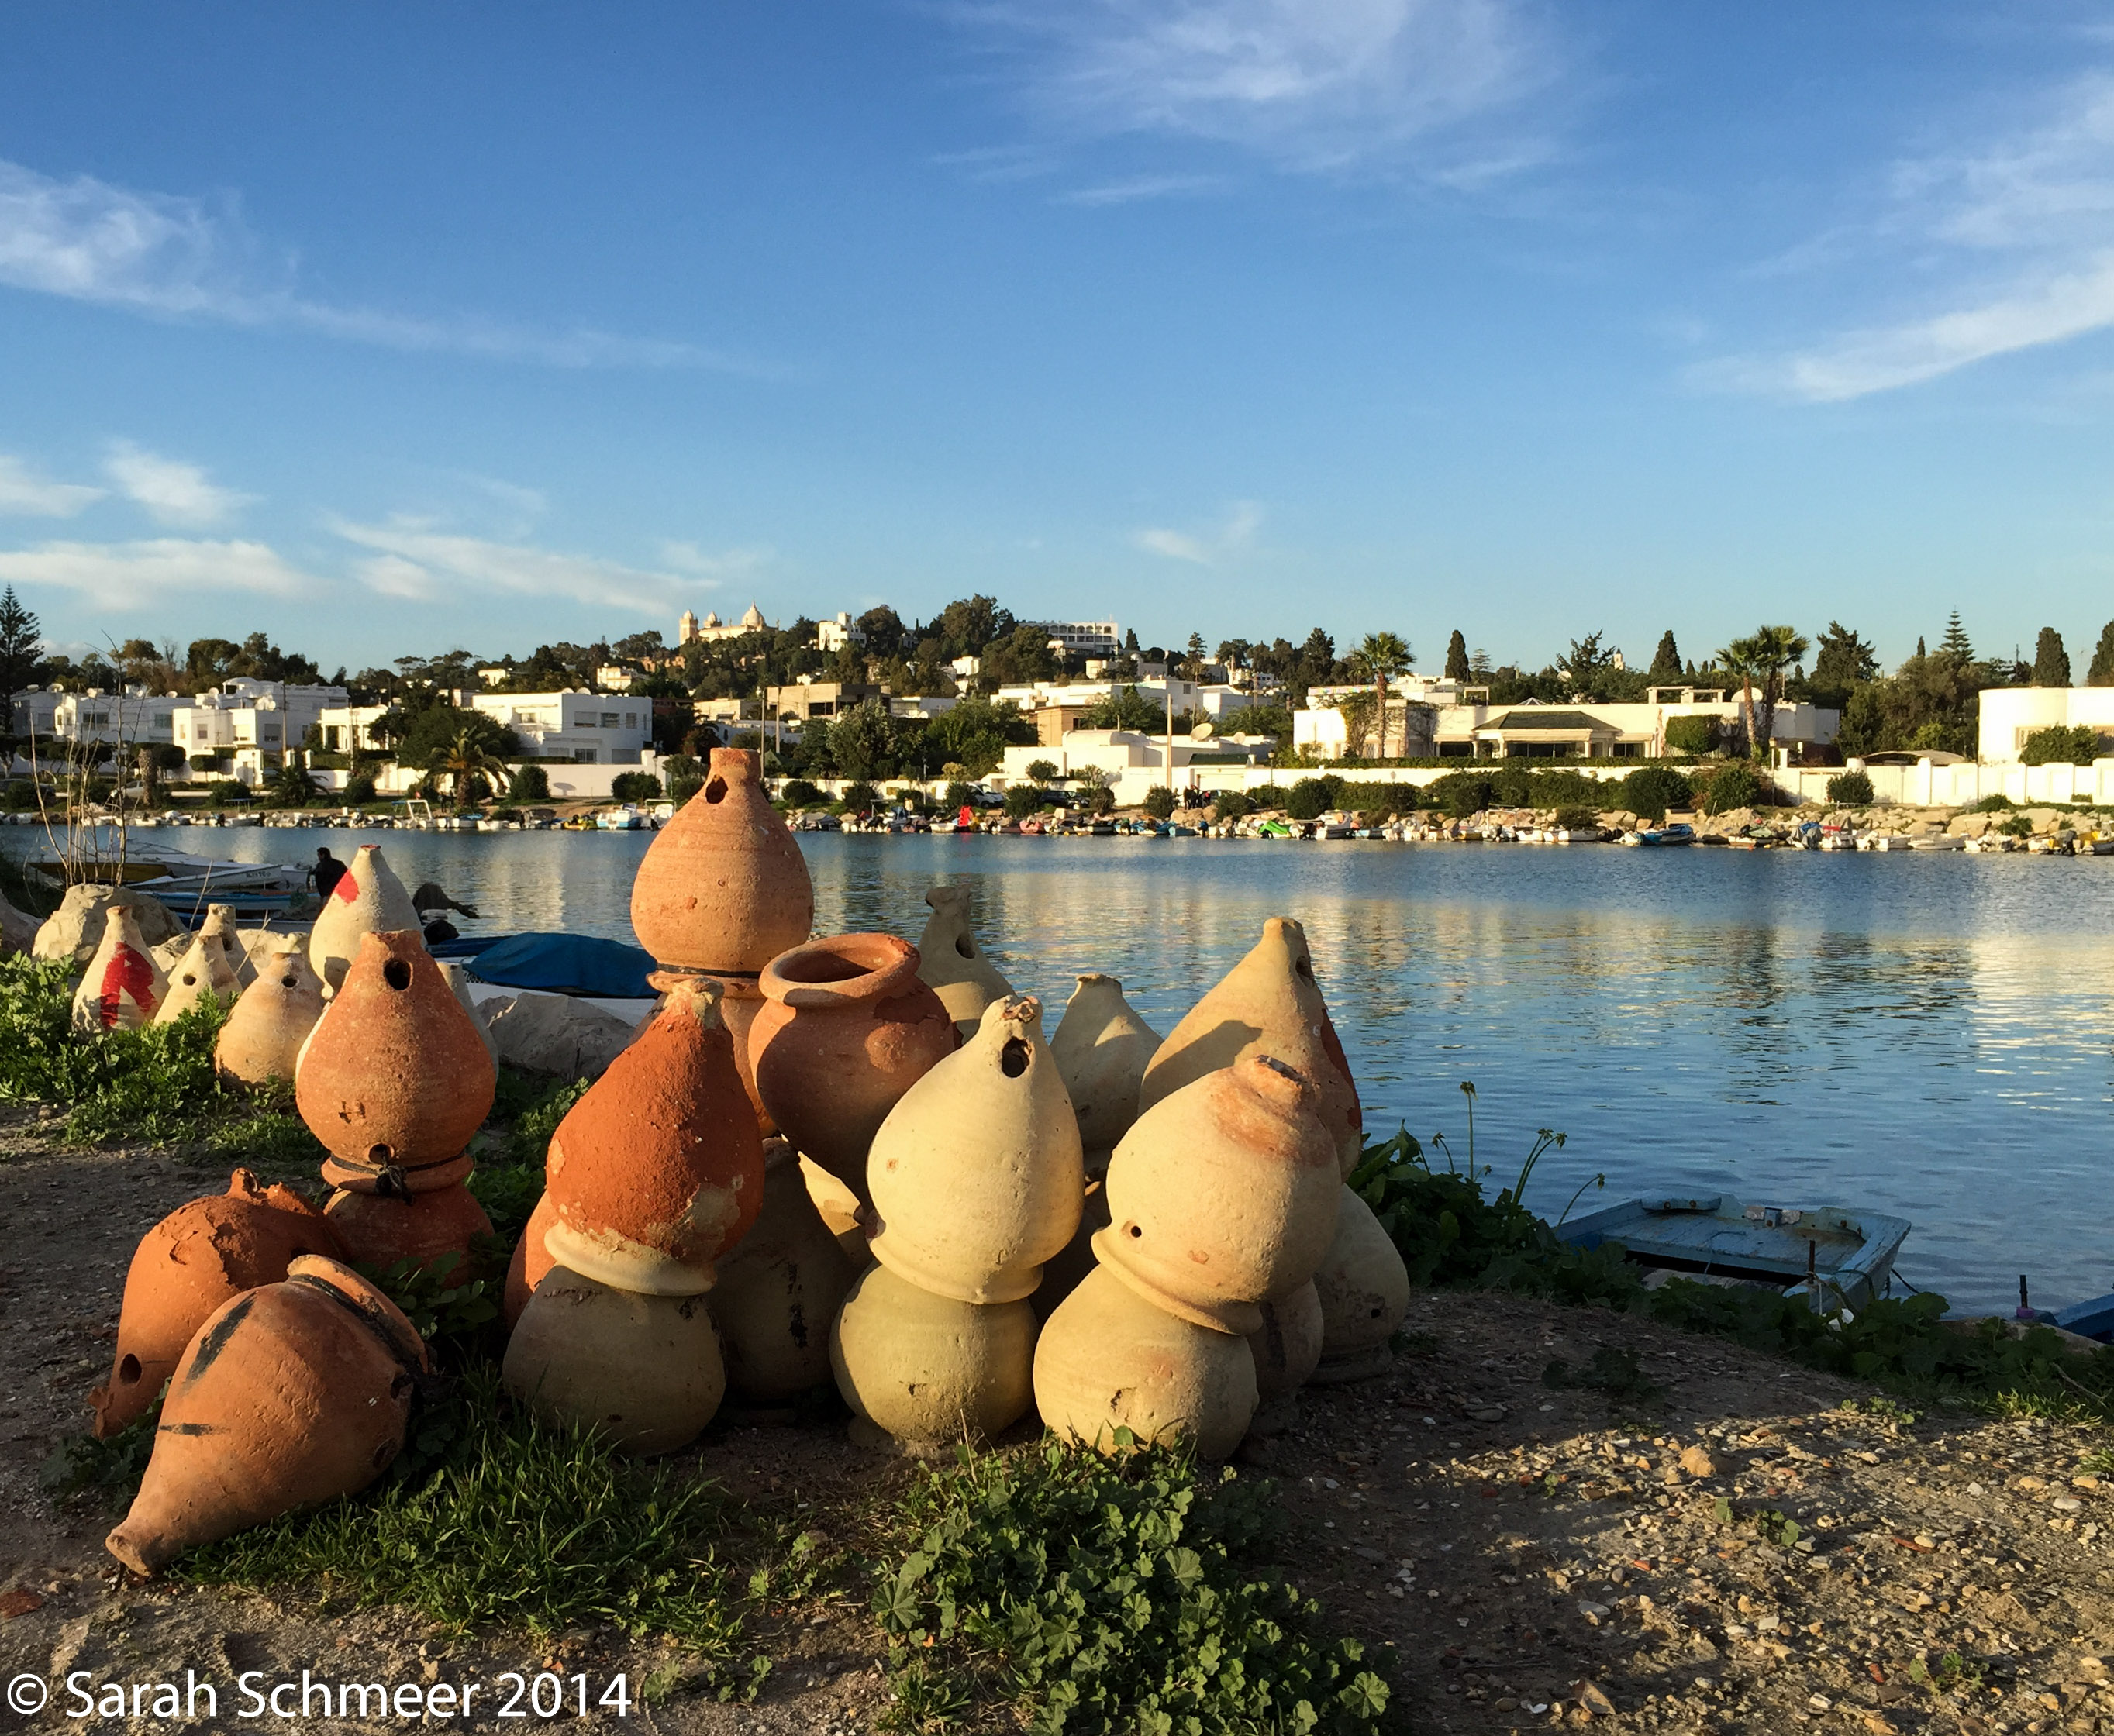 Clay pots for catching octopi with the city of Carthage in the background.